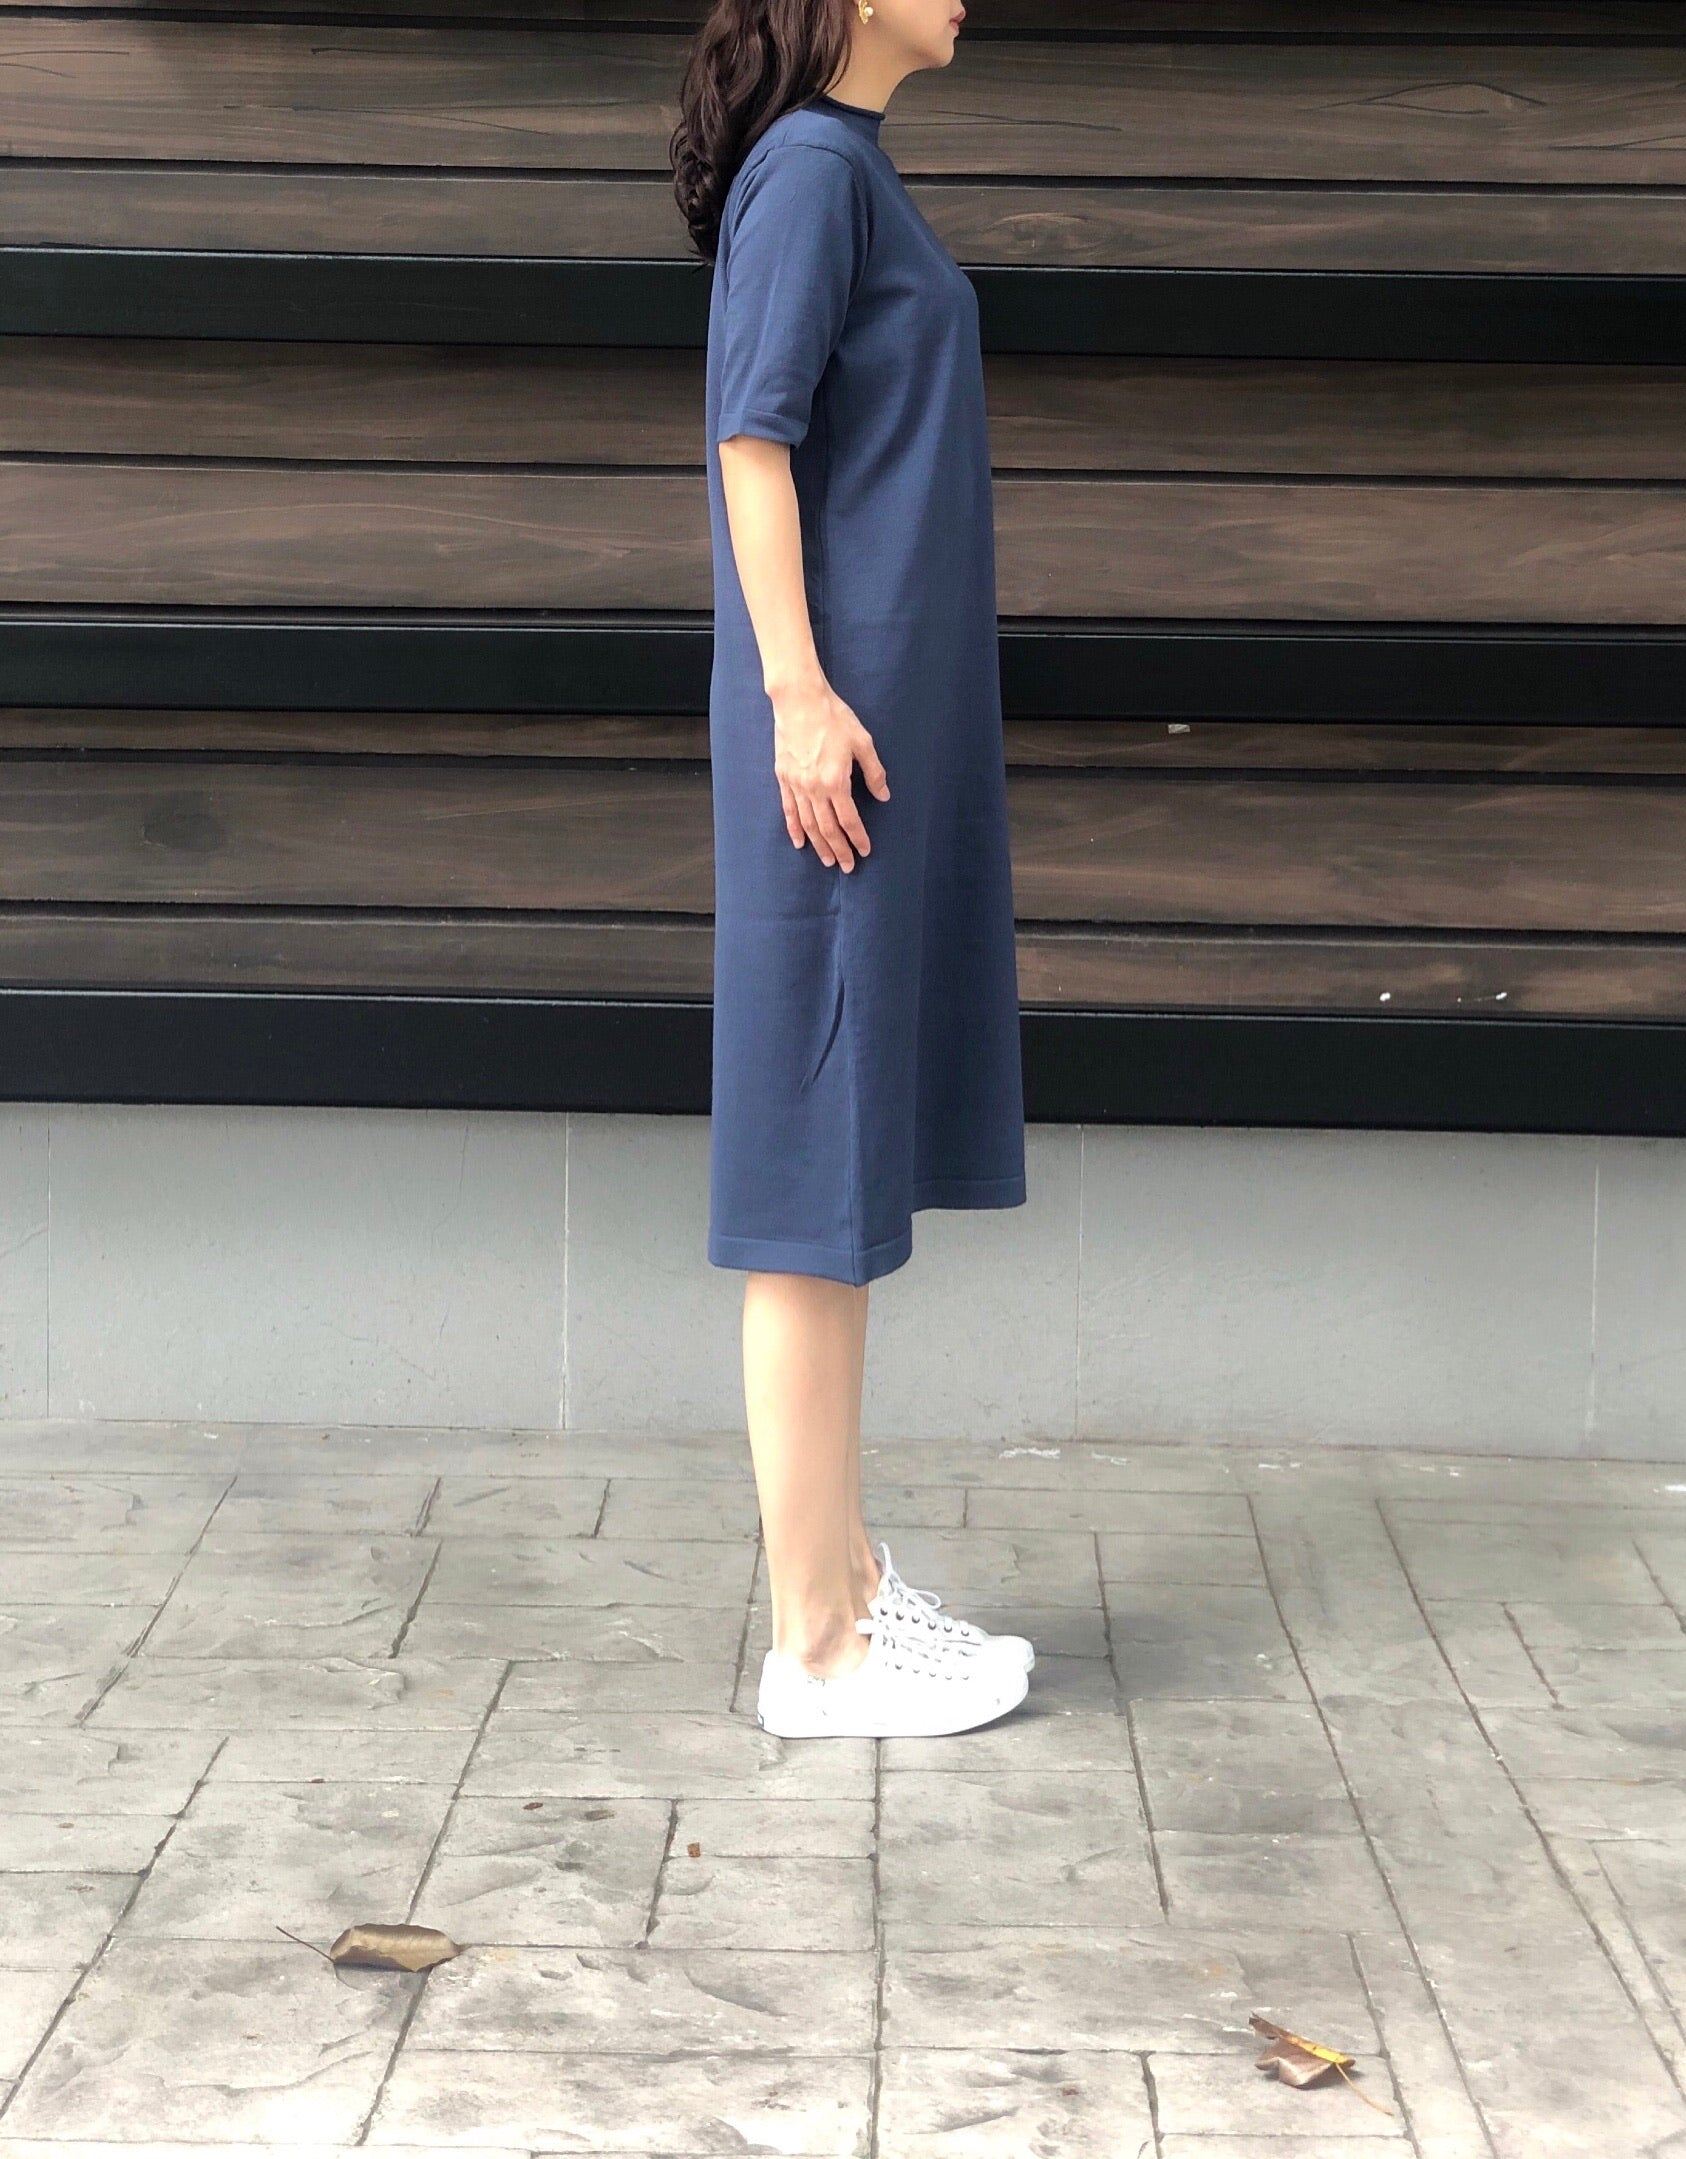 Lexi S/S Knitted Dress in Blue